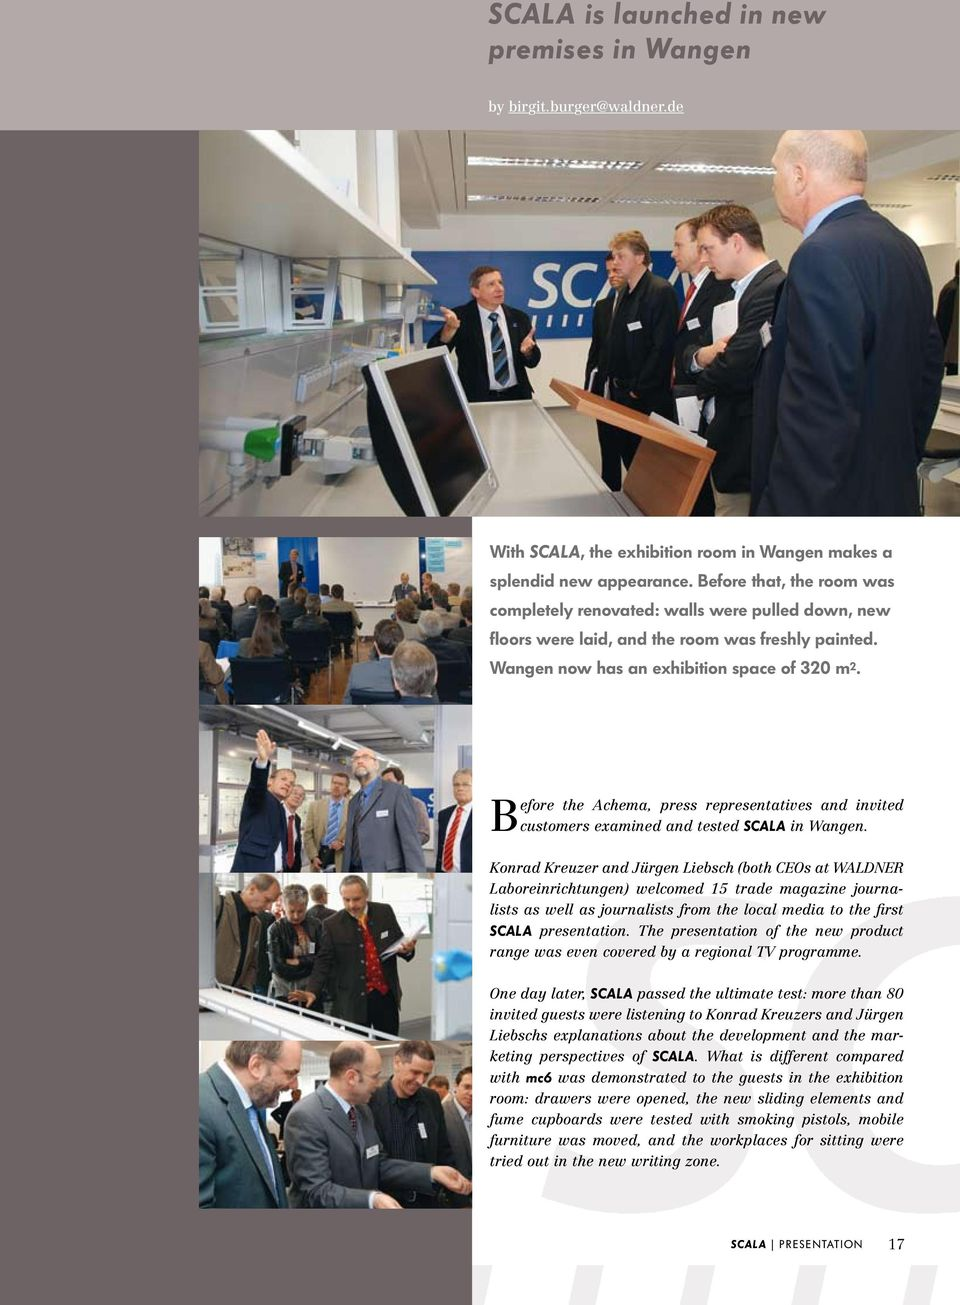 Before the Achema, press representatives and invited customers examined and tested Scala in Wangen.